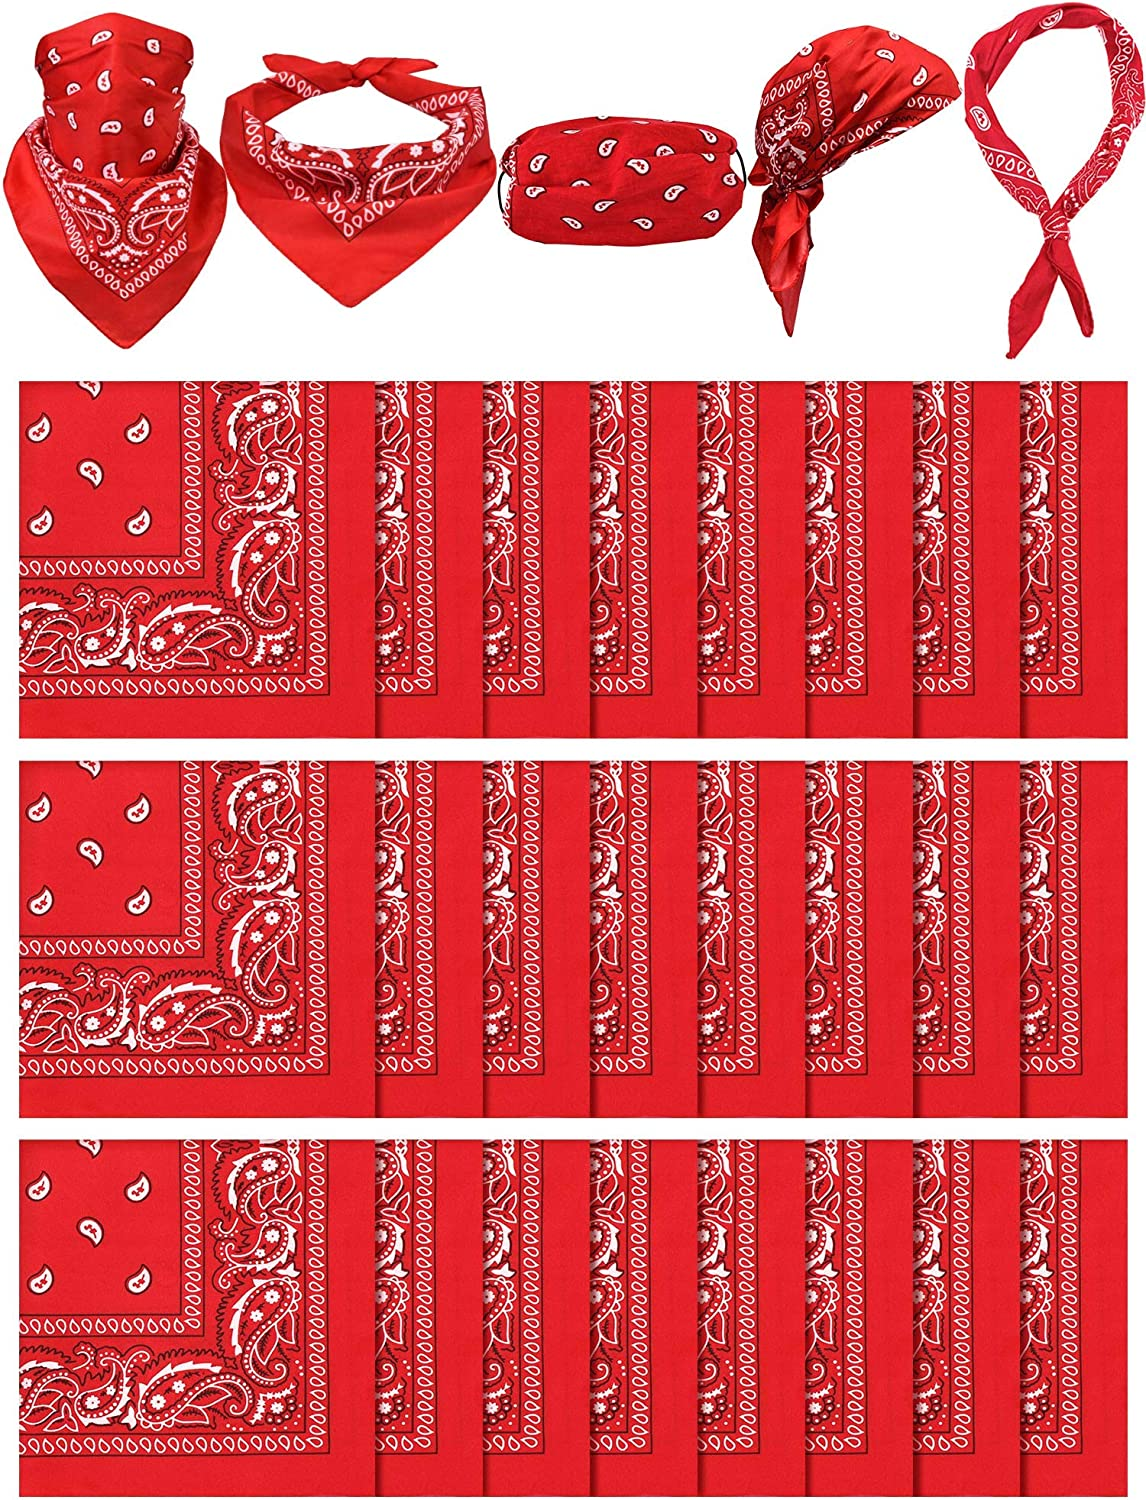 12 Pieces Paisley Print Bandanas Gift Set Multifunctional Paisley Head Wrap Headband Scarf for Men Women